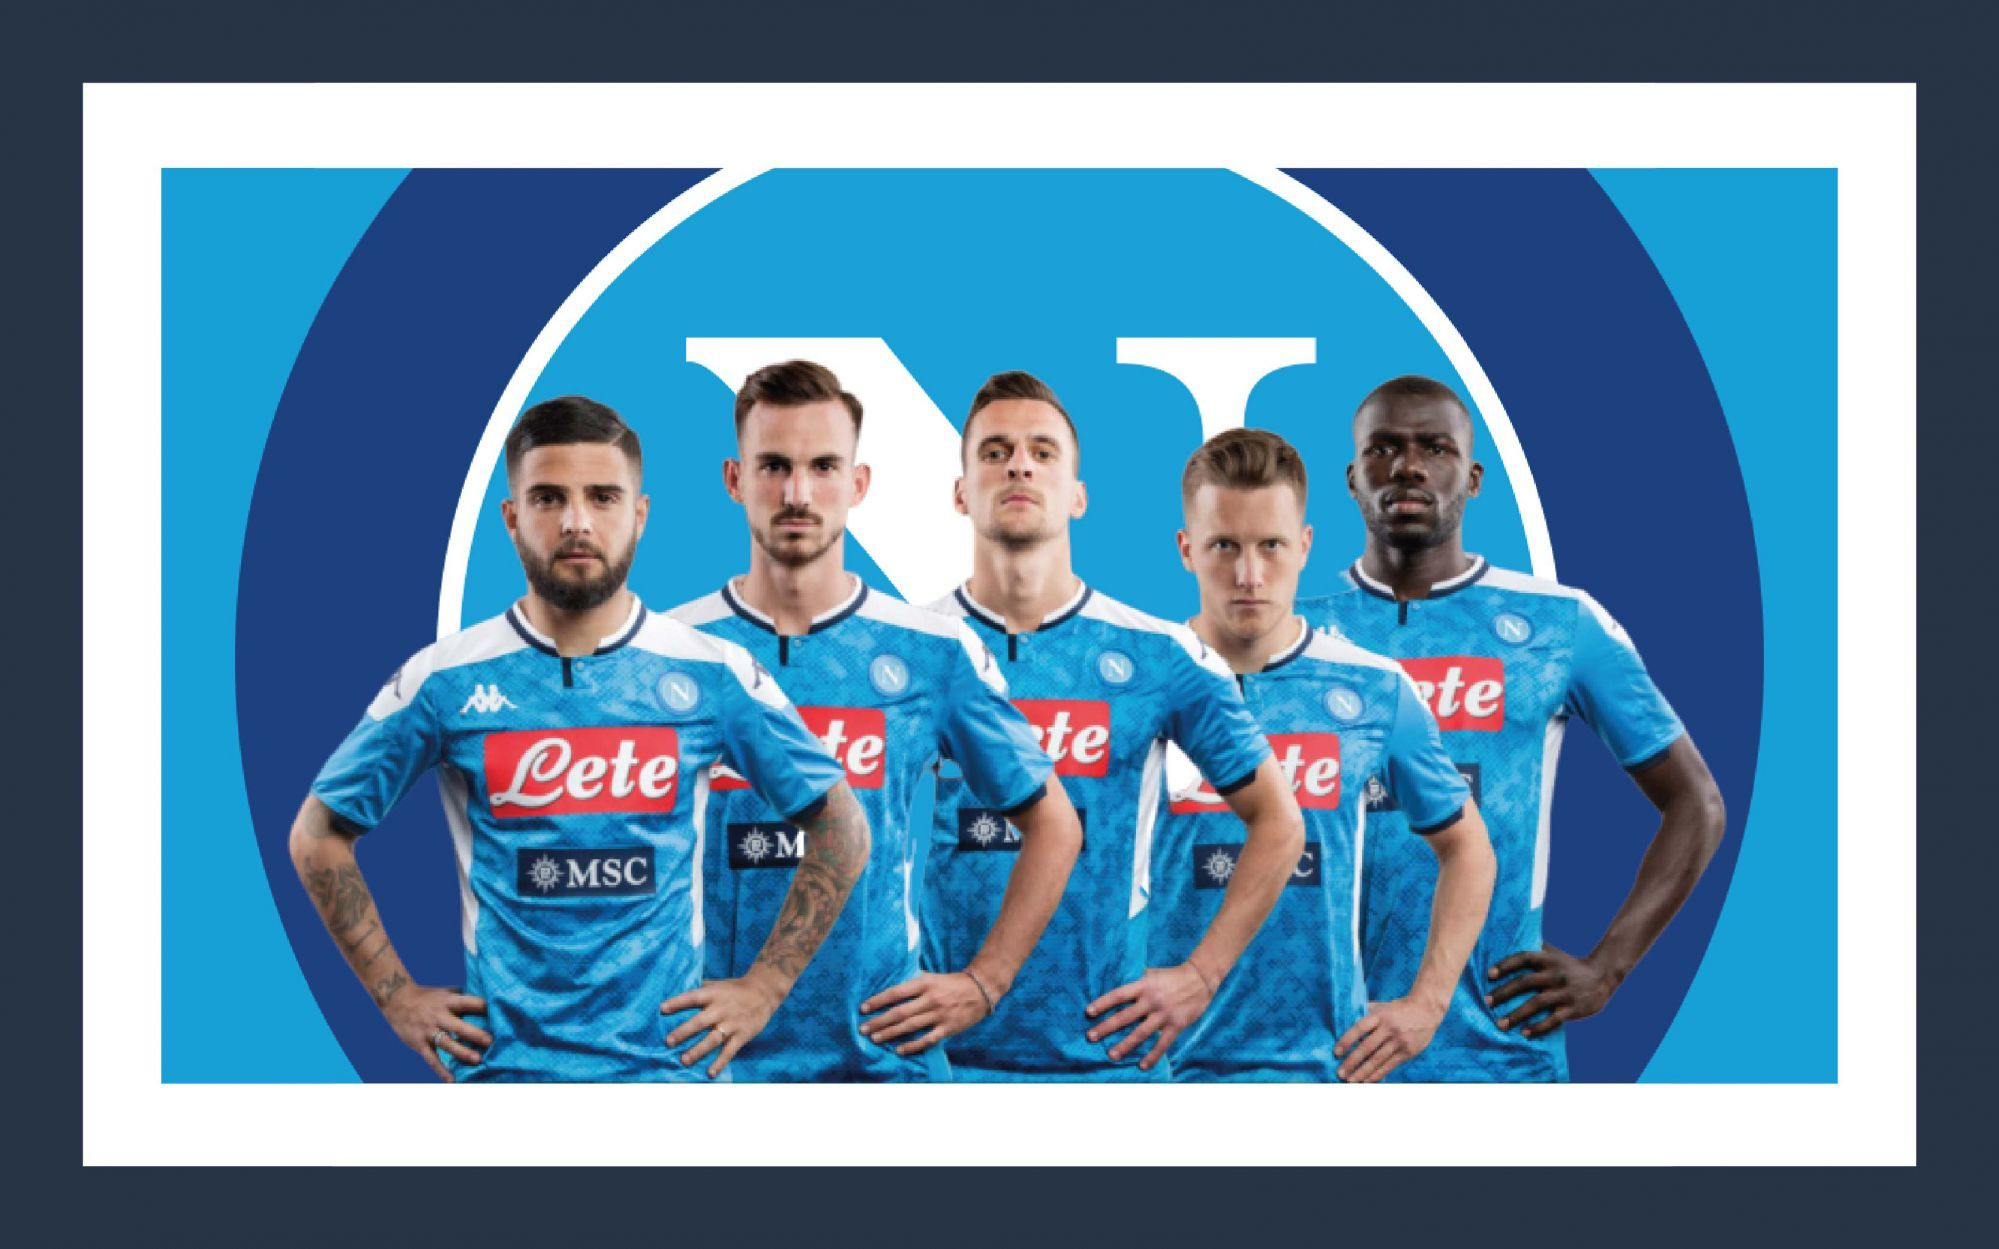 The Naples 2019 2020 Home Kit